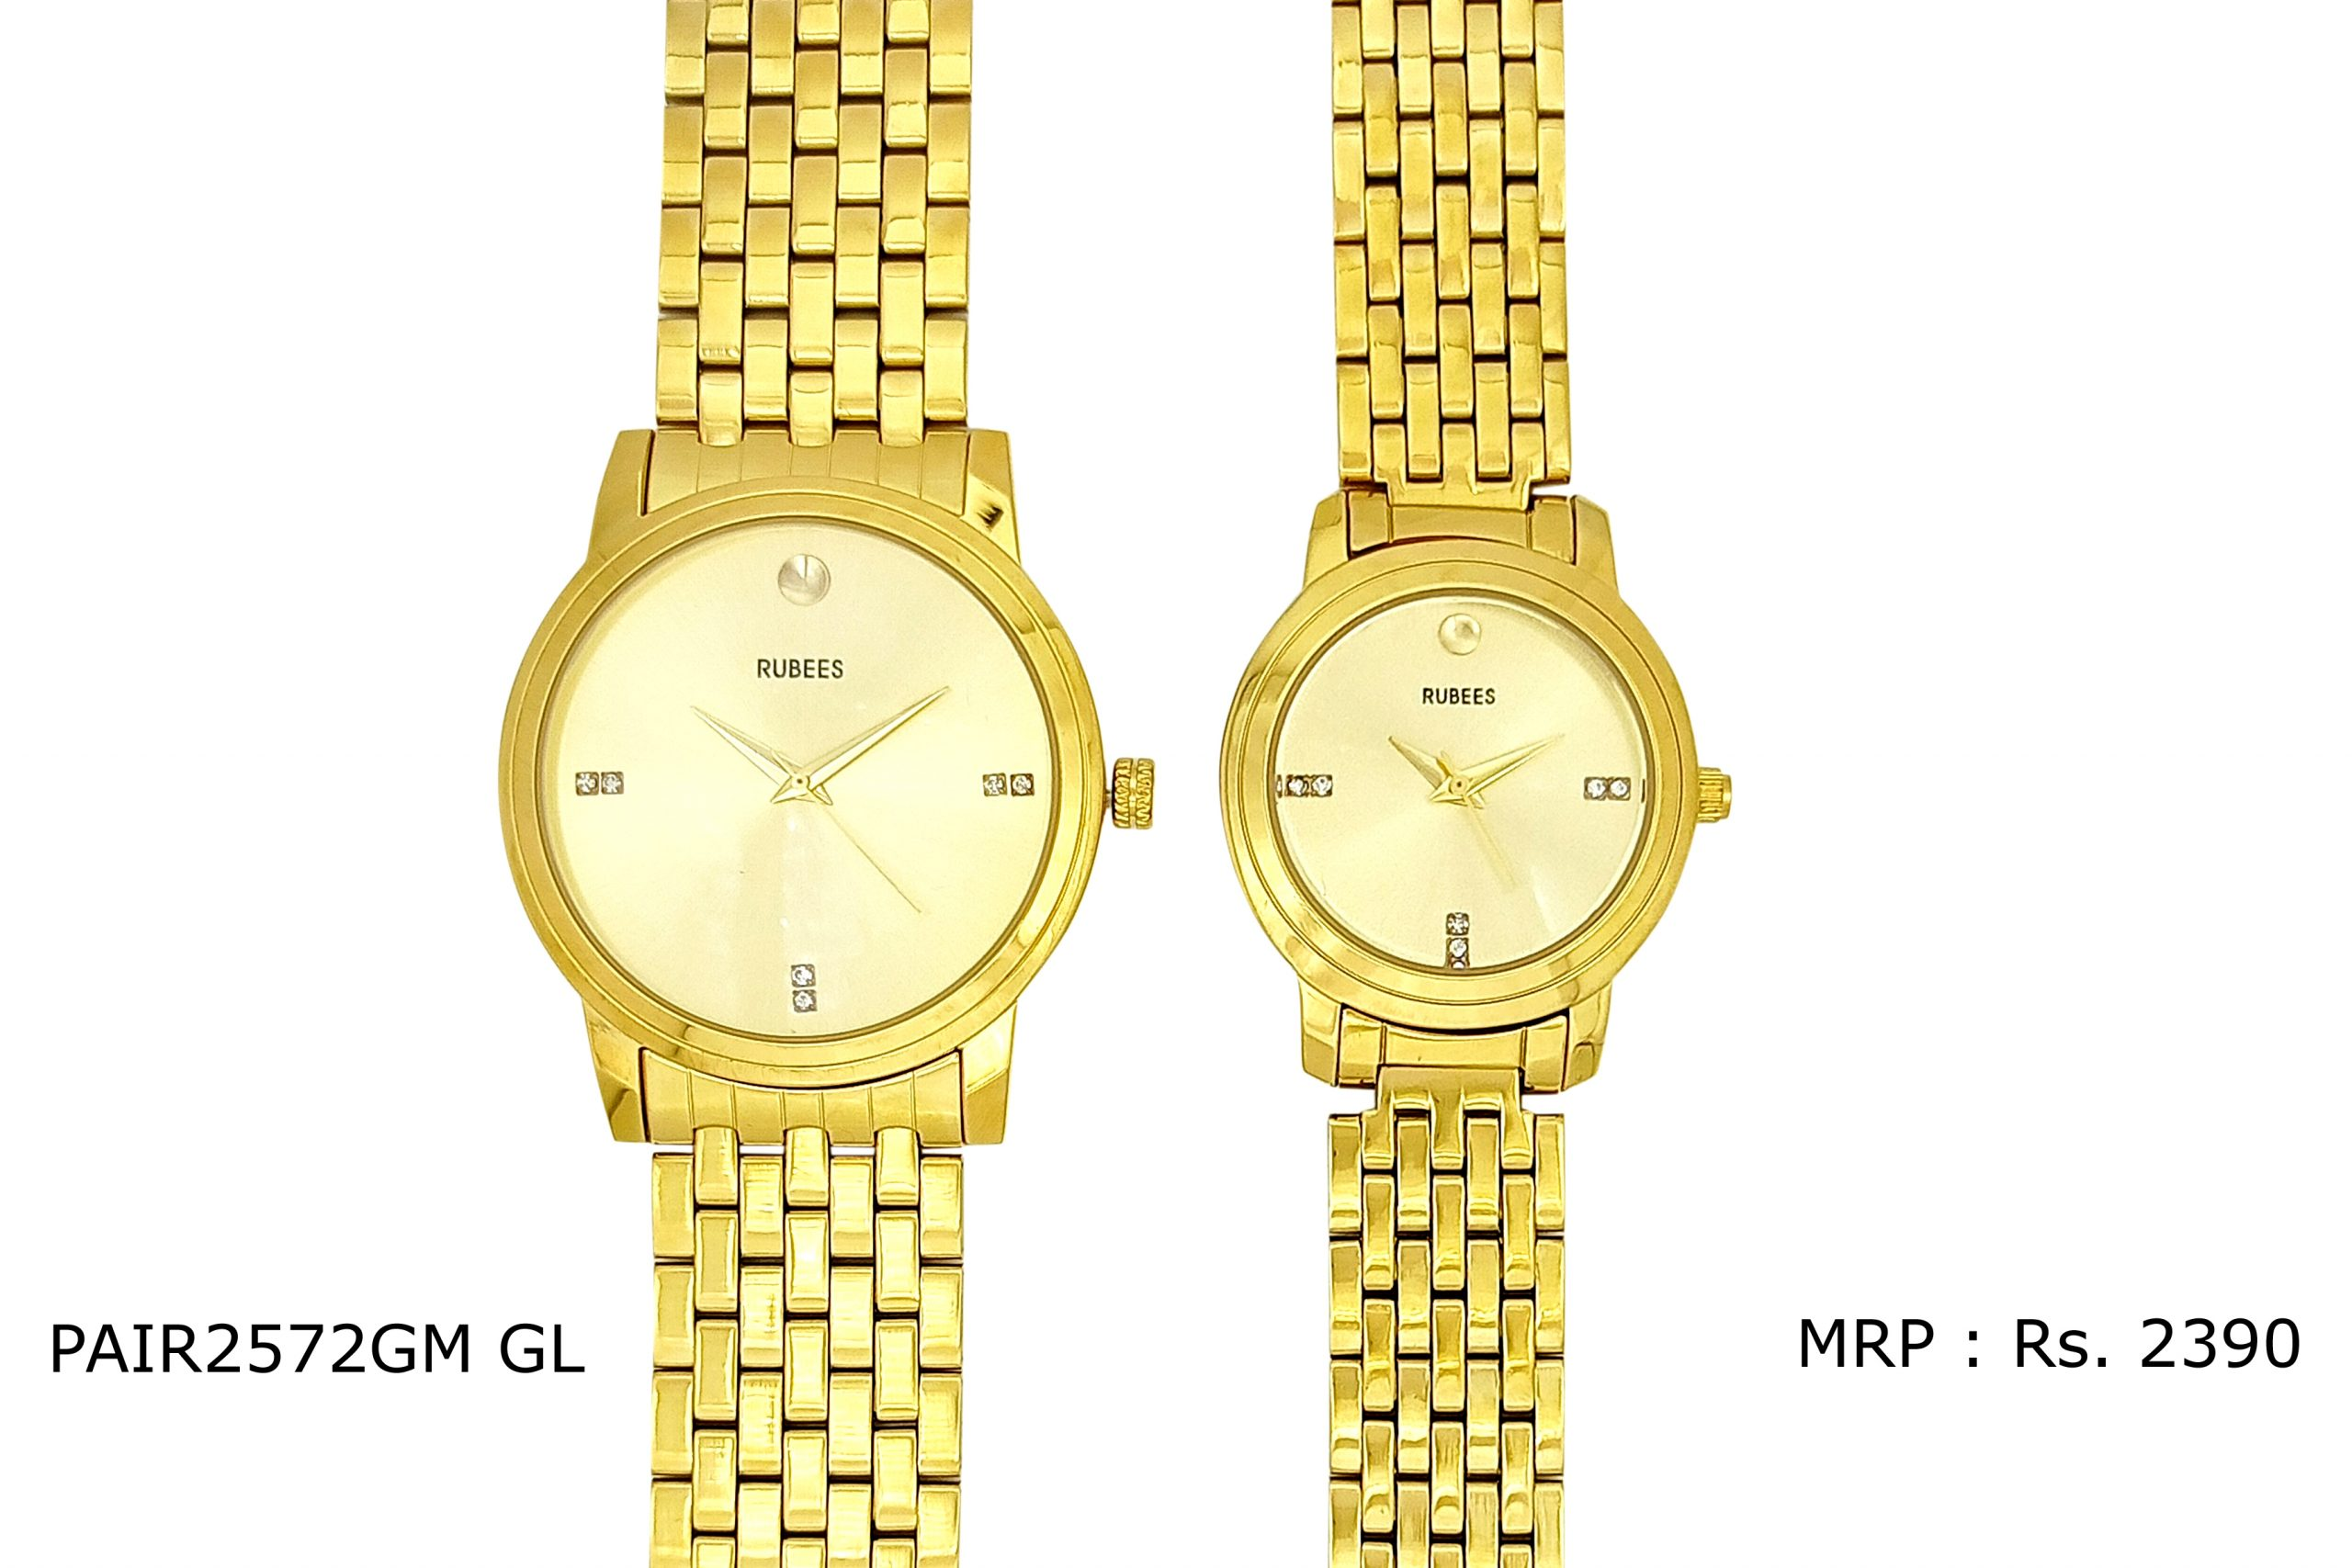 PAIR2572GMG1195 GL scaled